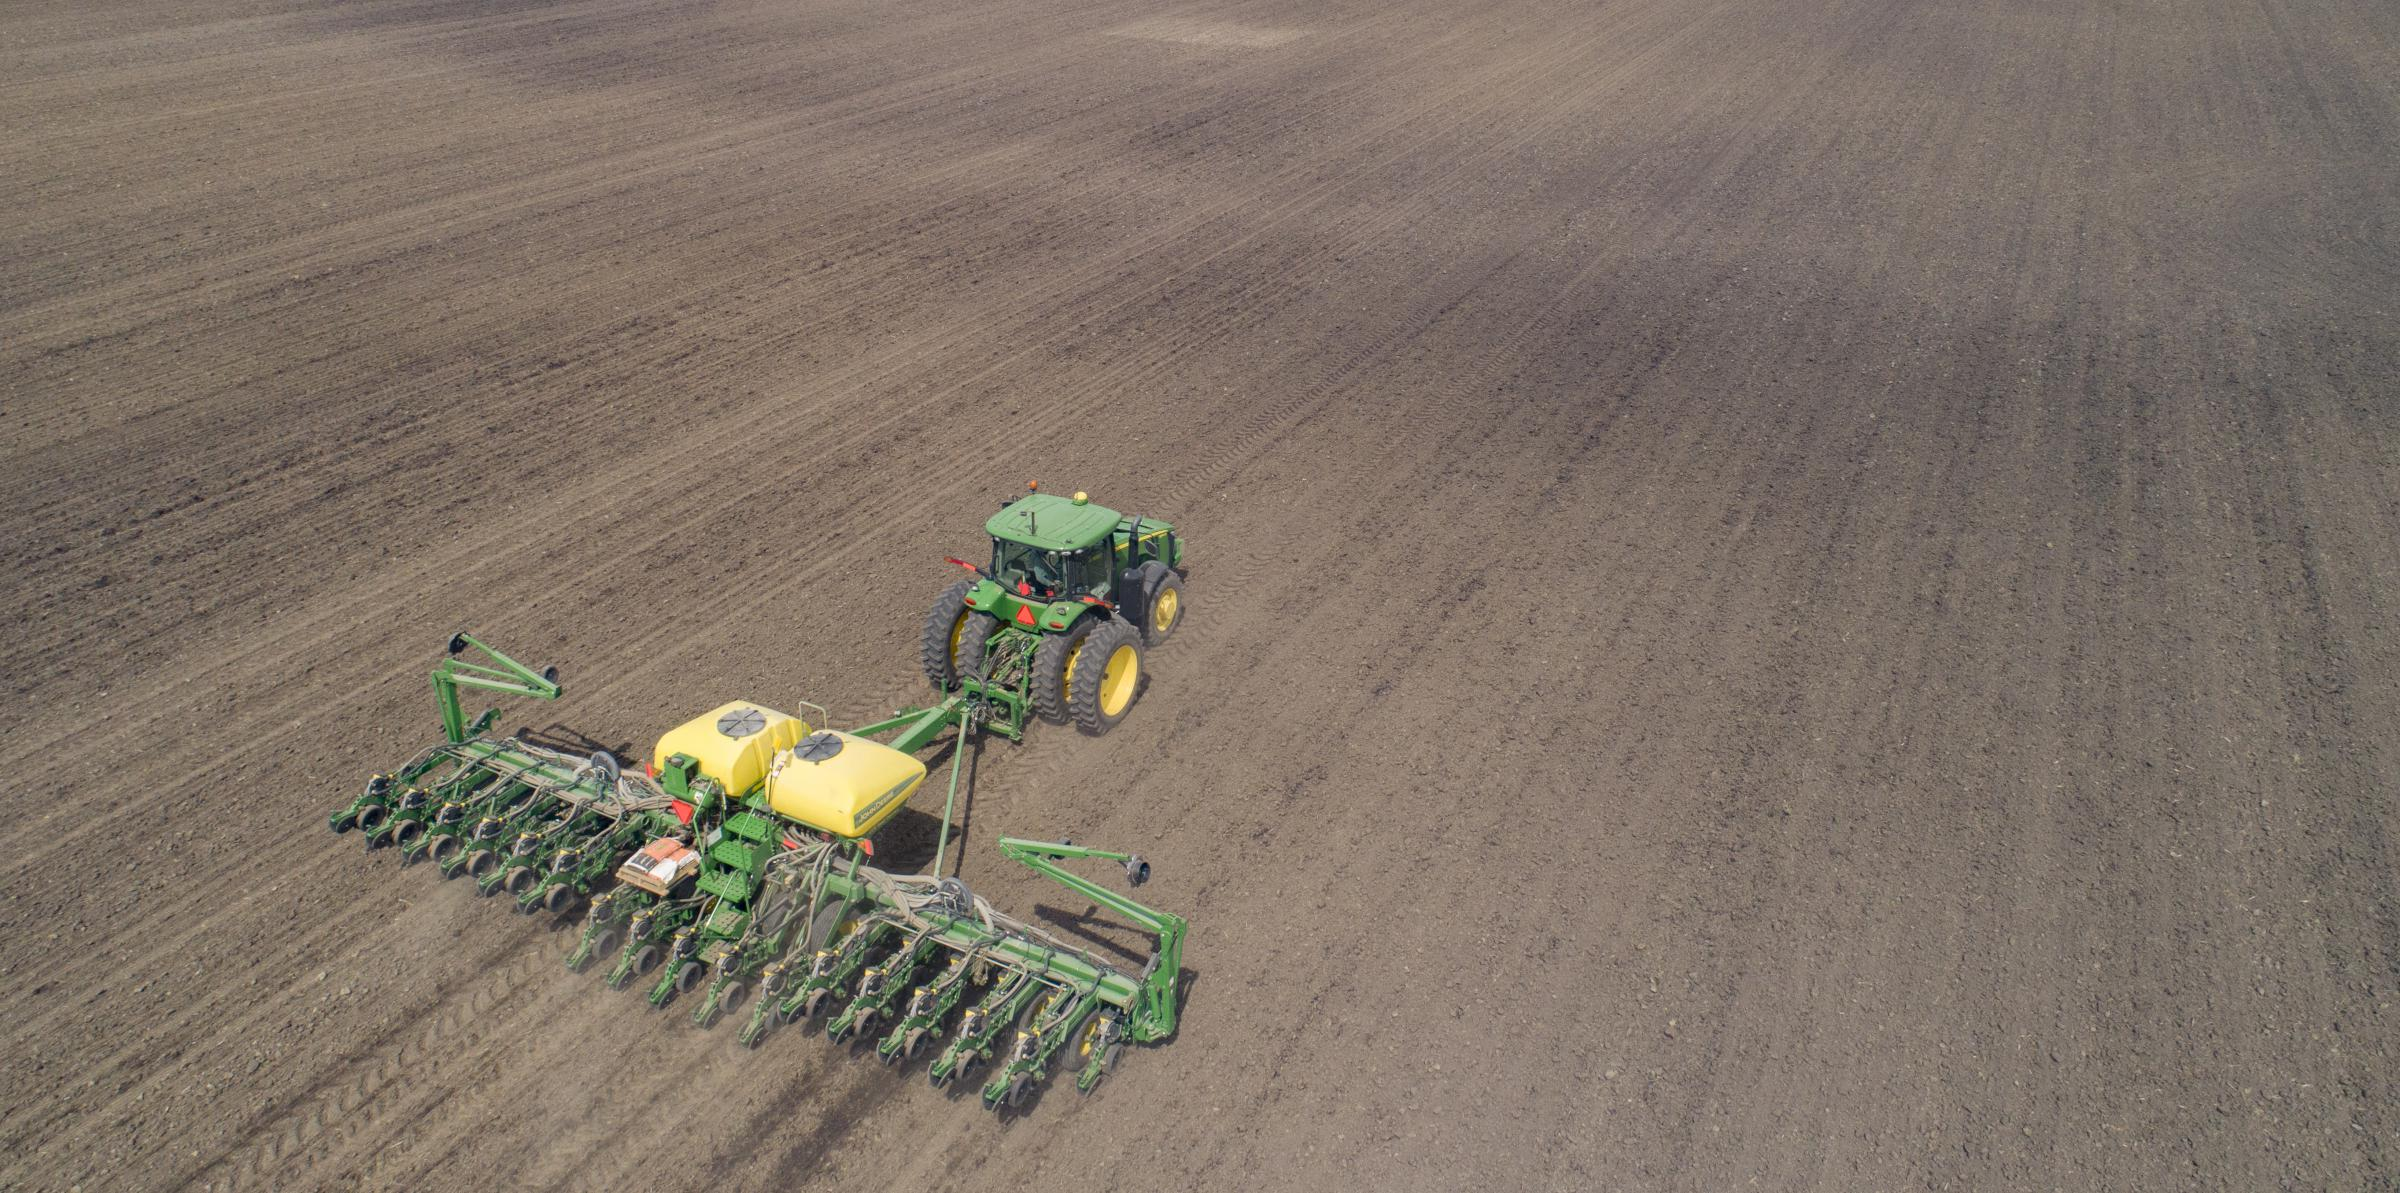 Planting is underway in much of the Midwest, and after planting, comes pesticide-spraying season. (photo credit: Darrell Hoemann, Midwest Center for Investigative Reporting)